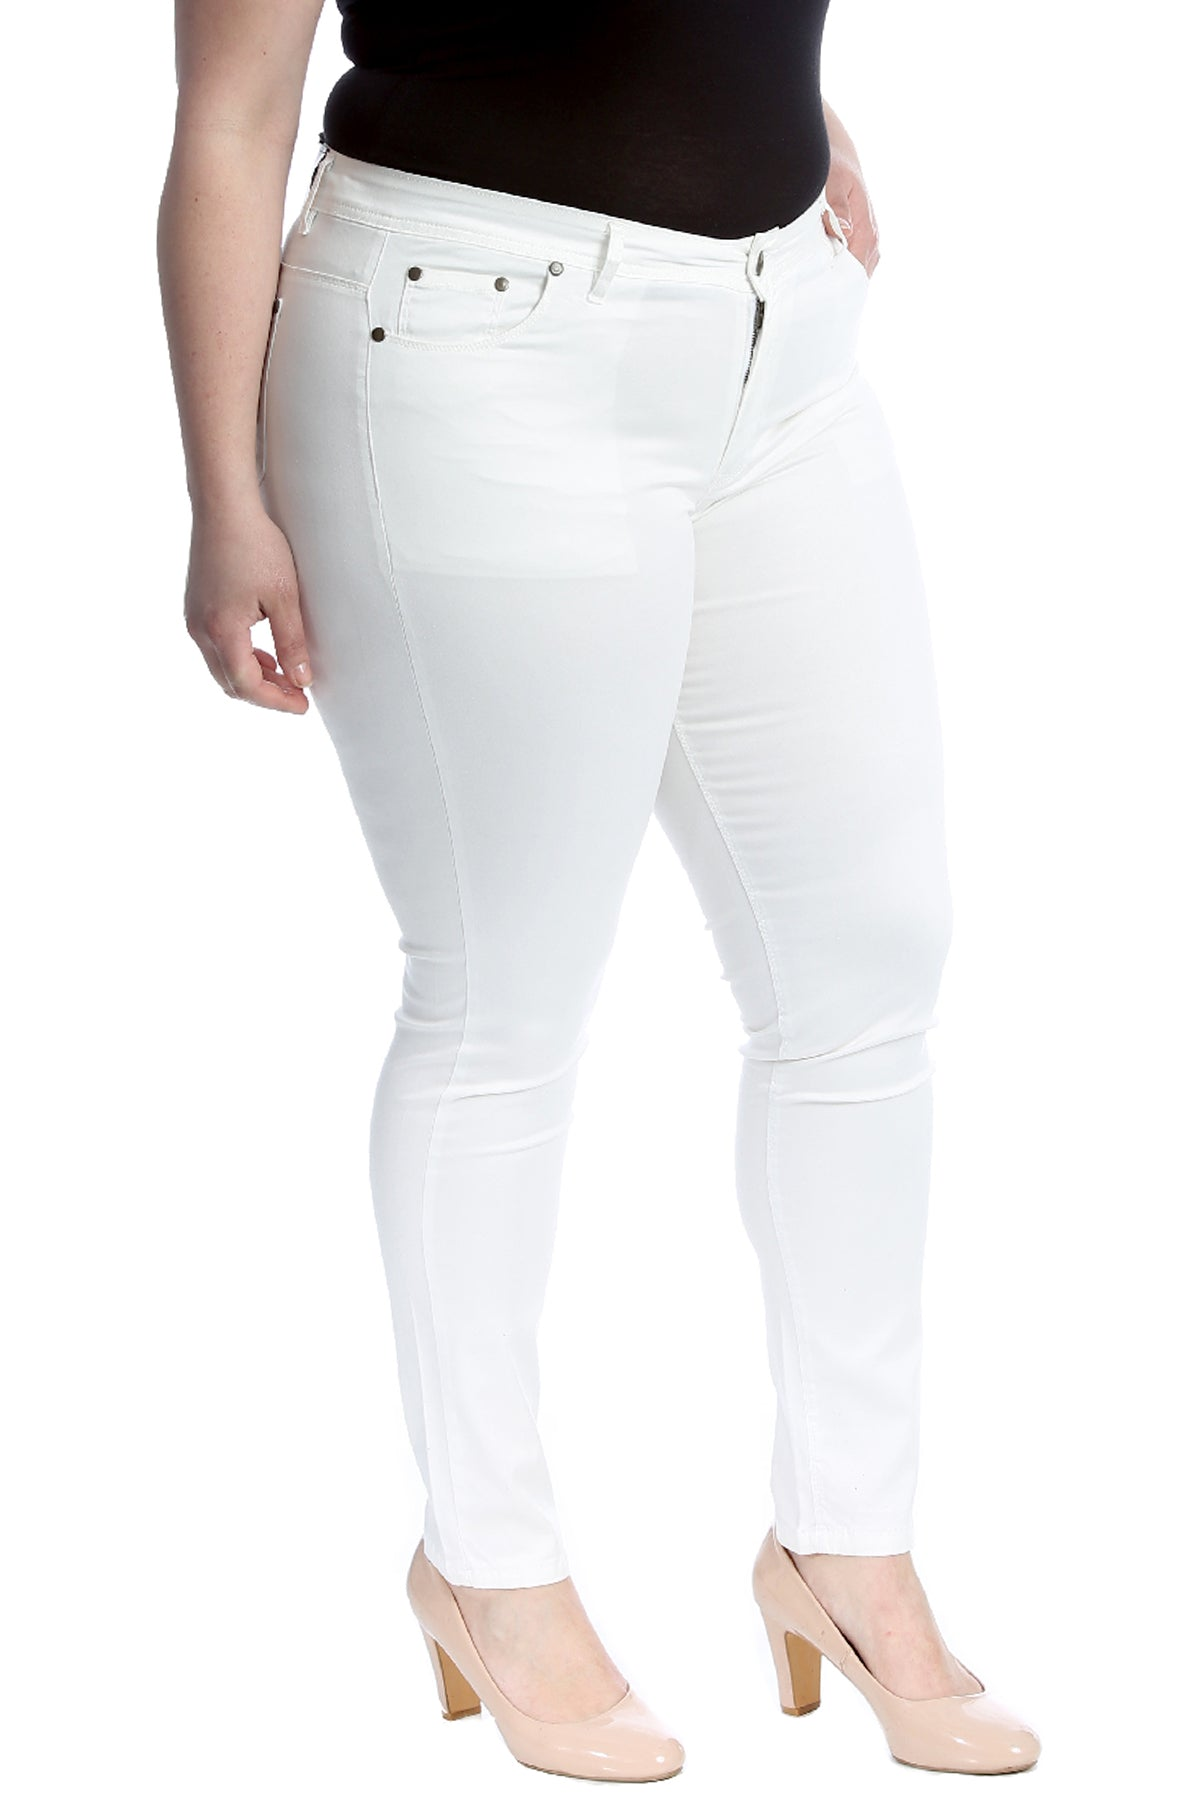 6101 Plain Full Length Pant